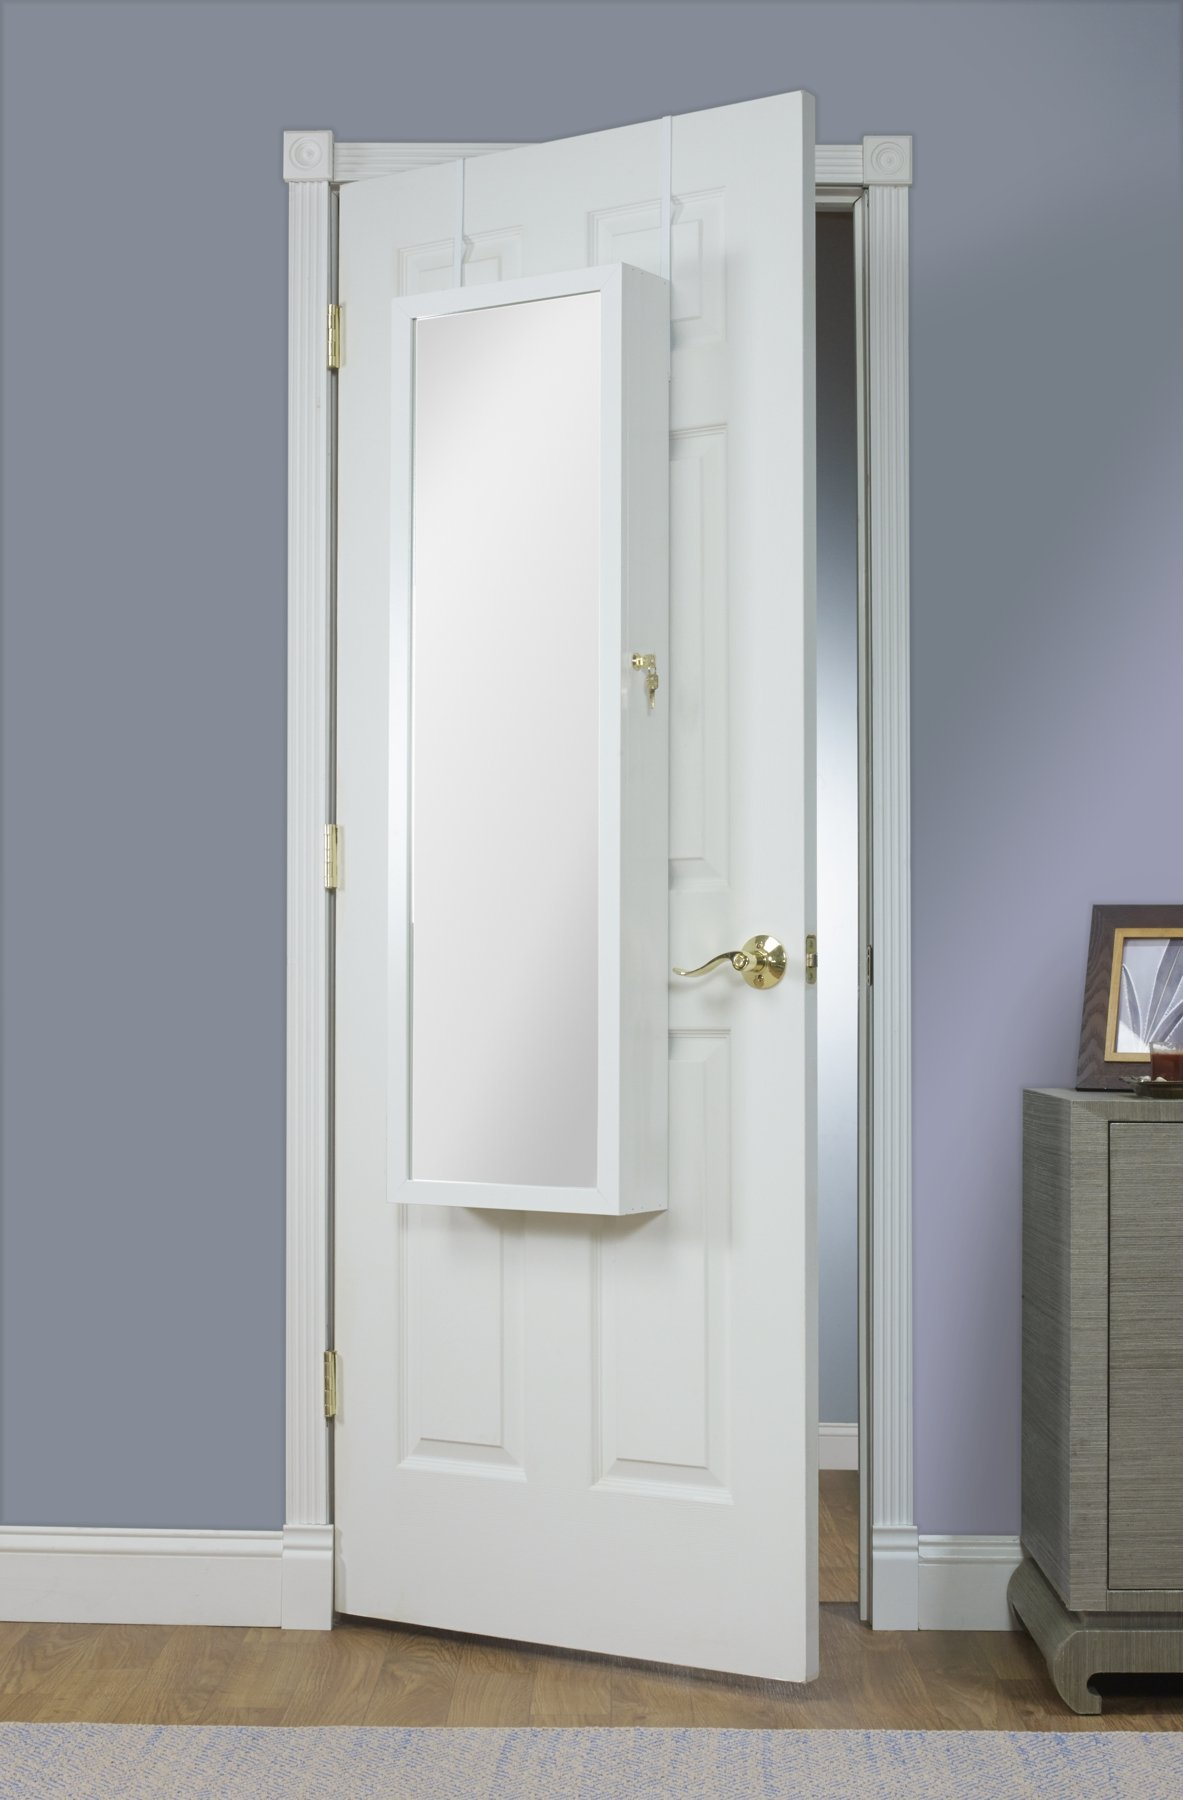 Mirrotek Over The Door Combination Jewelry and Makeup Armoire, White by Mirrotek (Image #3)